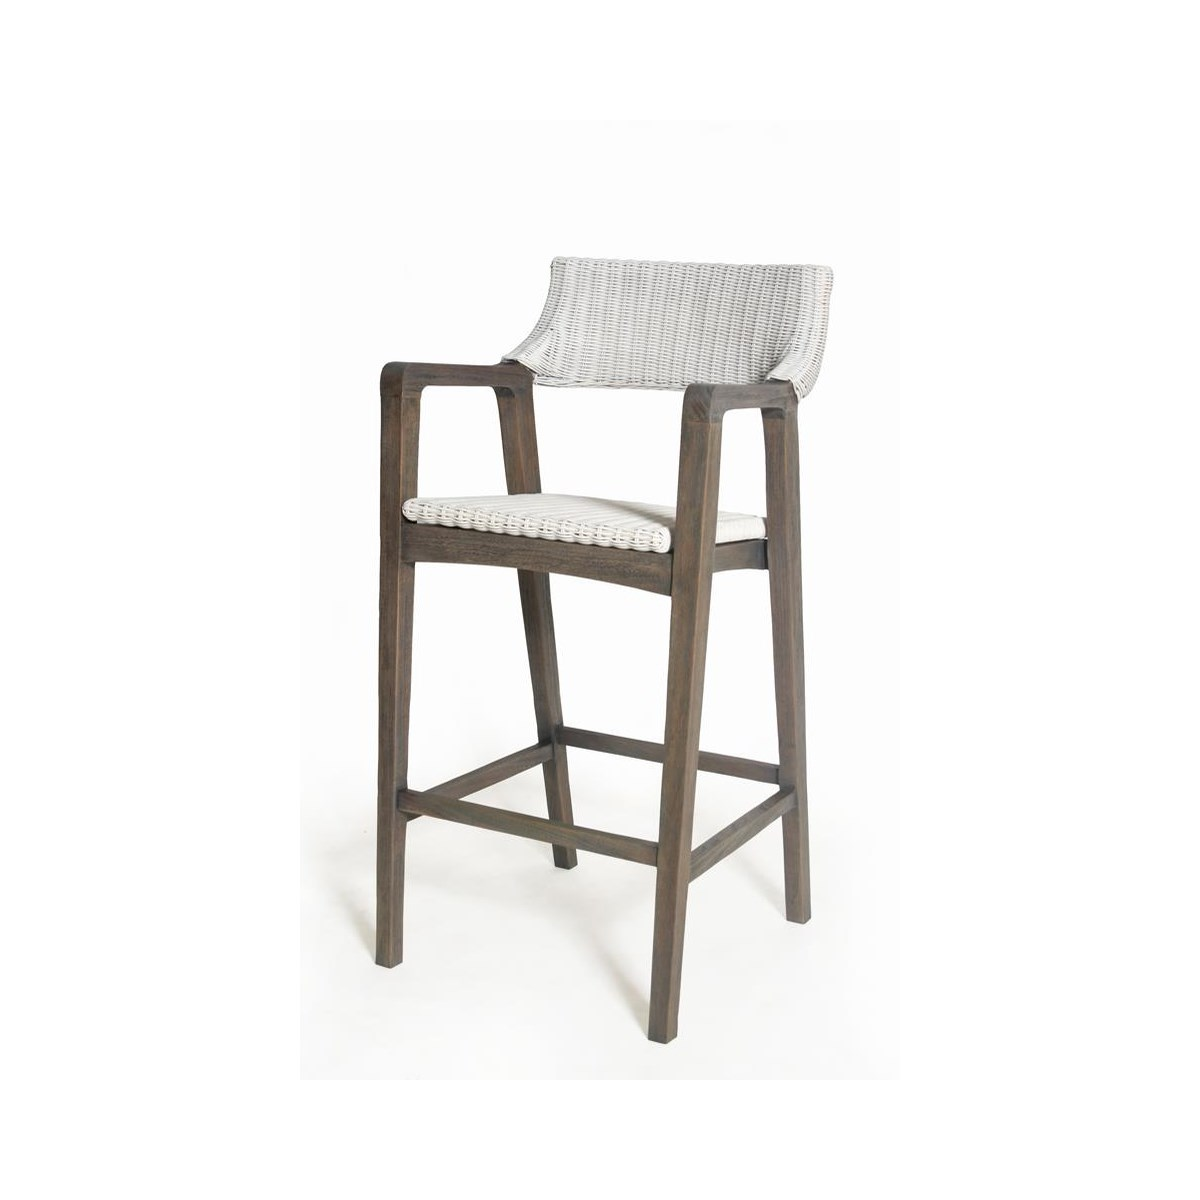 Urbane Bar Chair  Frame Color - Old Gray  Woven Seat & Back Color - White  SOLD AS-IS  ~  ALL SA